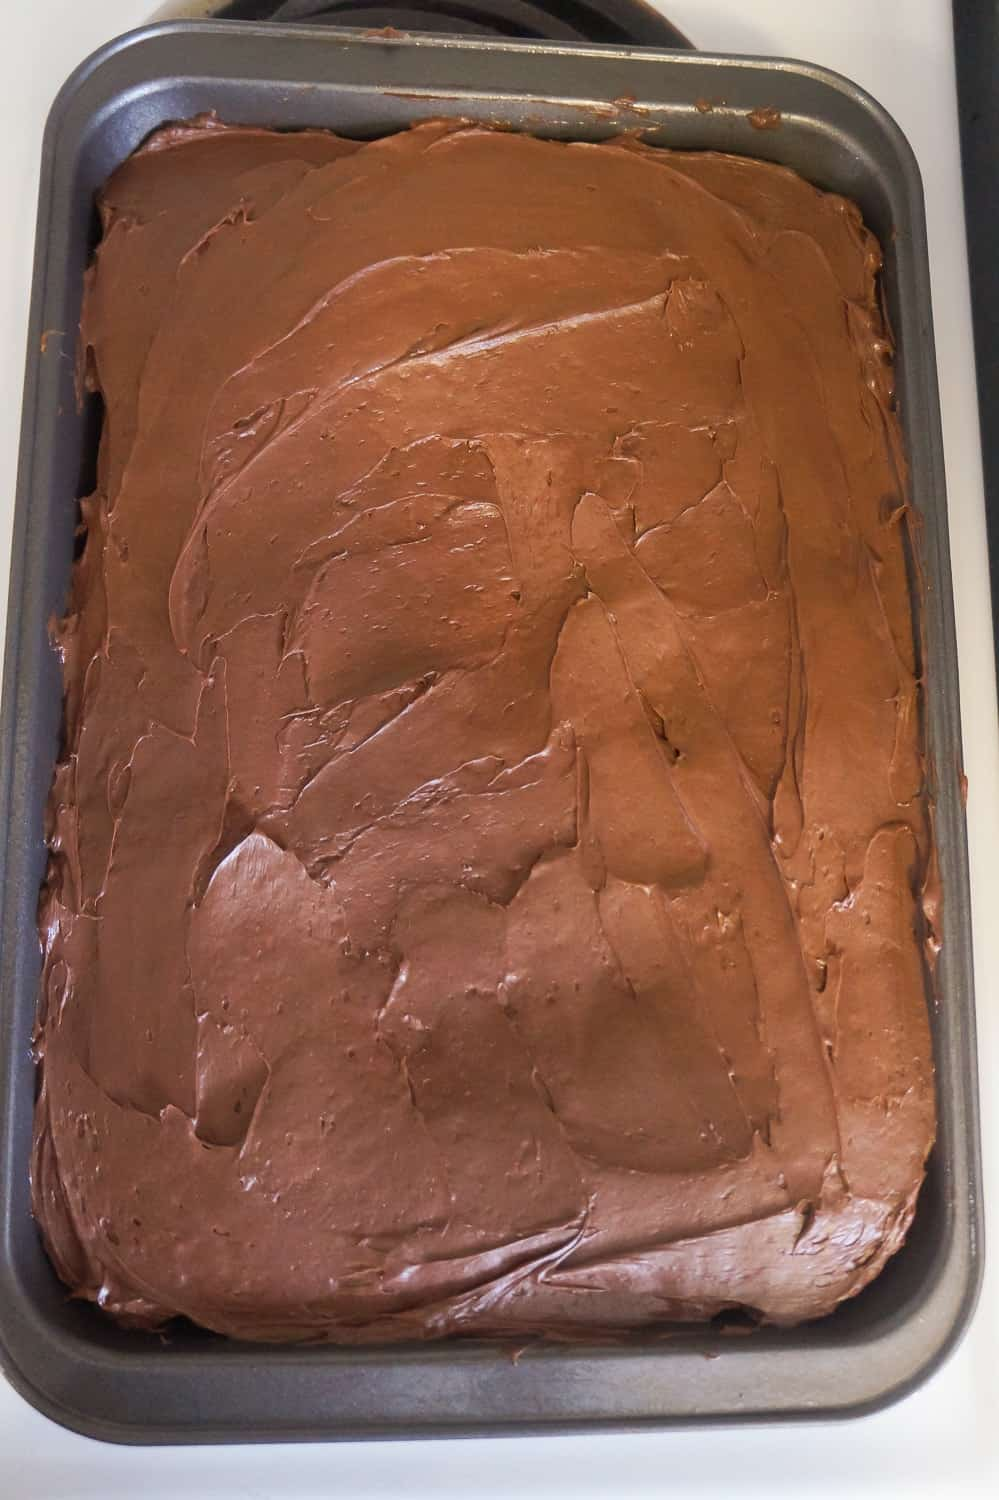 chocolate frosting on peanut butter banana sheet cake